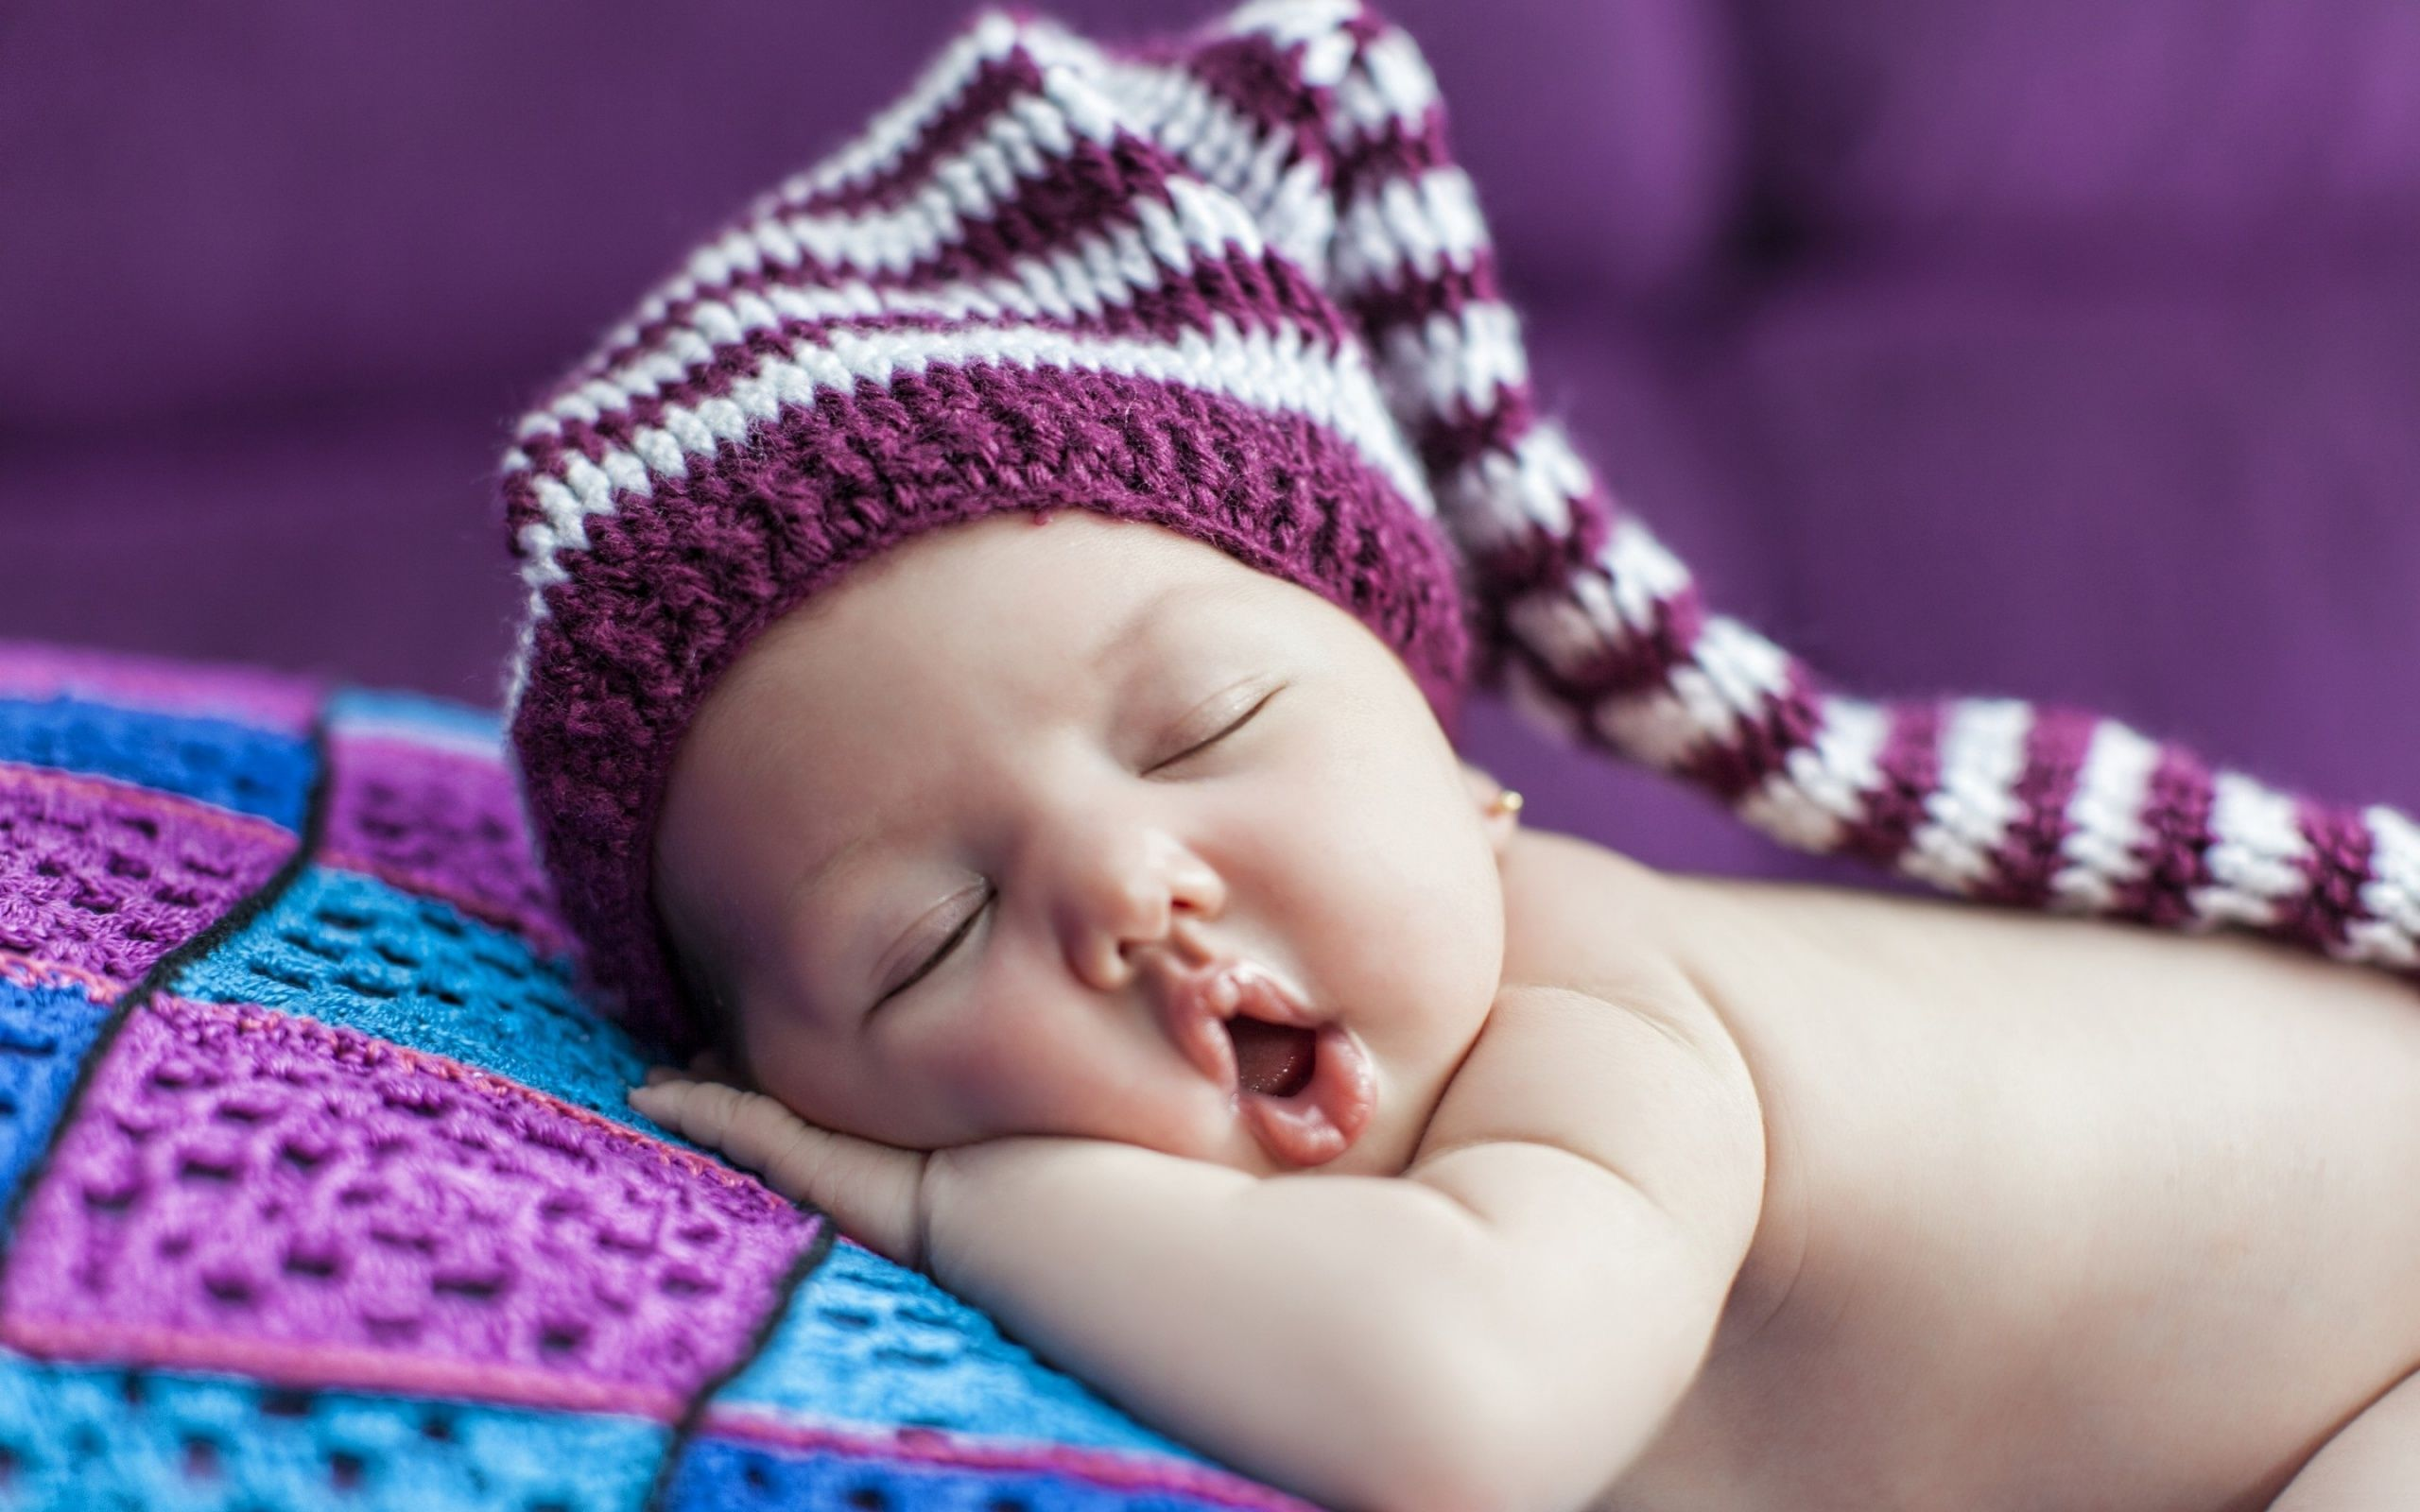 Baby HD Wallpapers - Top Free Baby HD Backgrounds - WallpaperAccess